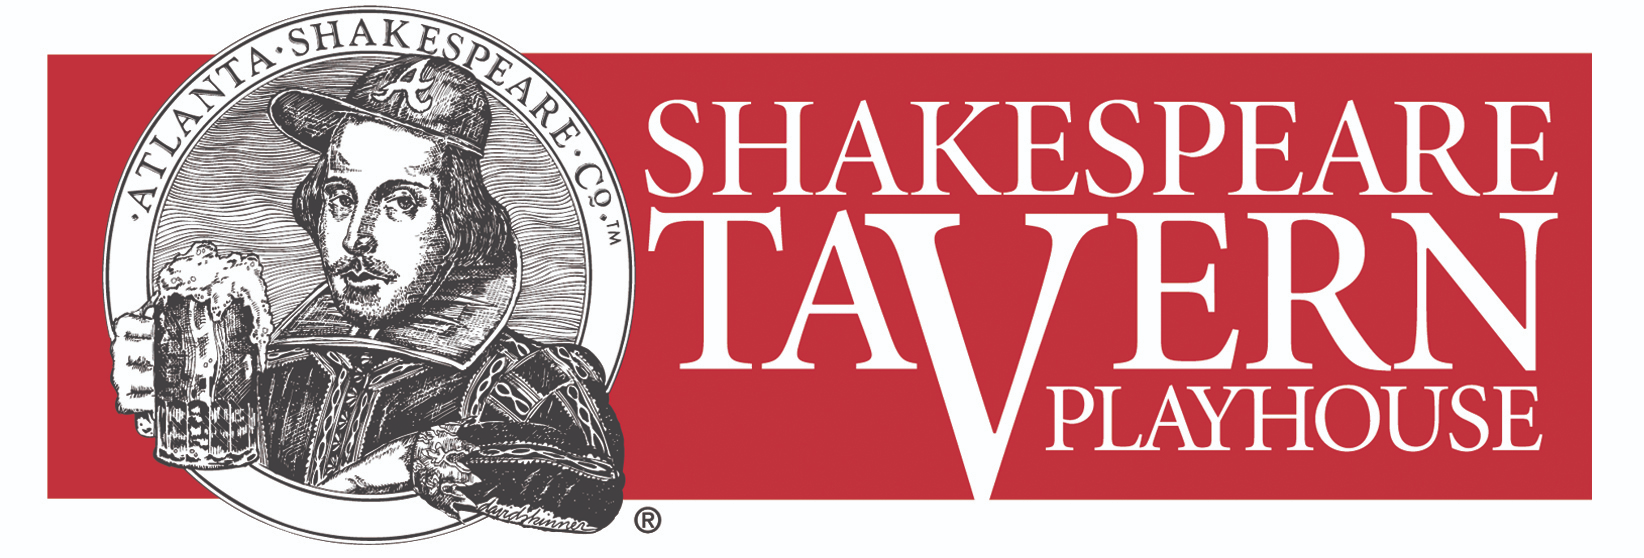 Shakespeare Tavern Playhouse.png